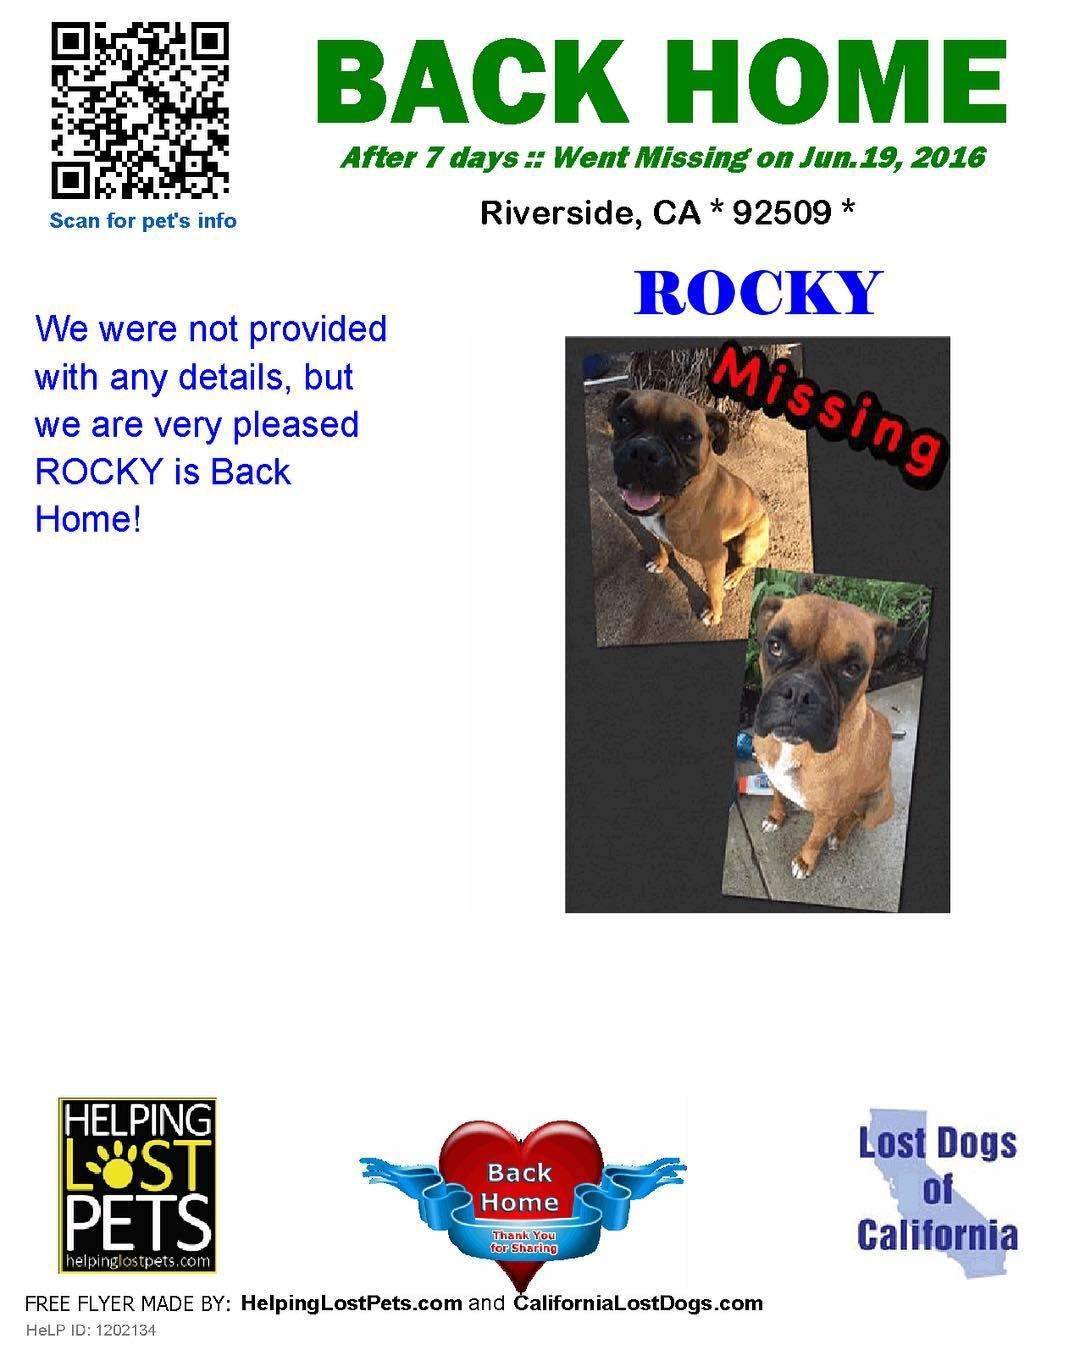 Backhome Rocky Boxer From Riverside Ca Has Been Reunited With His Family Lost Jun 19 2016 Back Home Jun 26 2016 Losing A Dog Losing A Pet California